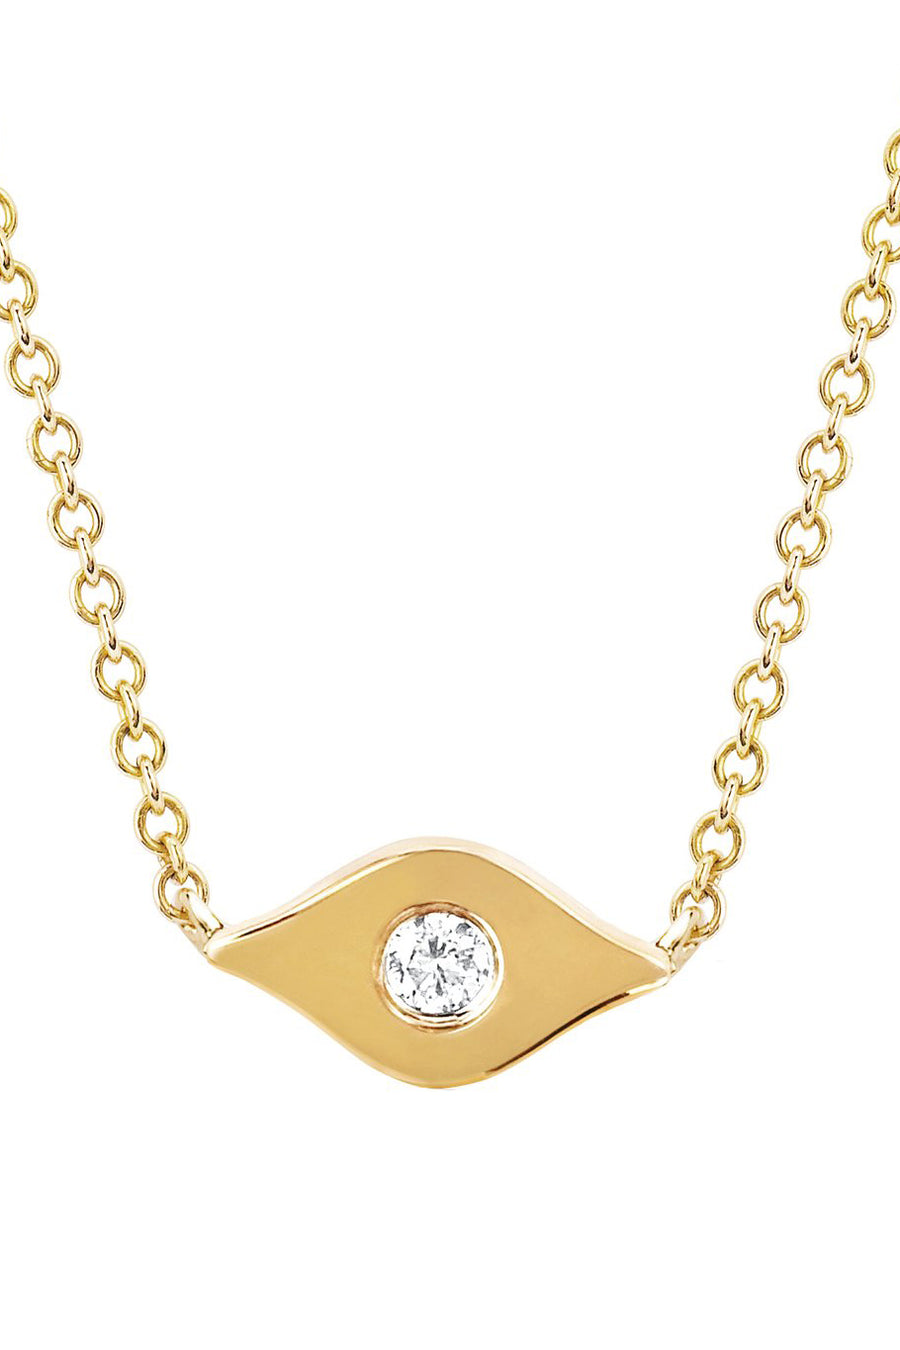 Gold & Diamond Evil Eye Necklace - Pavilion